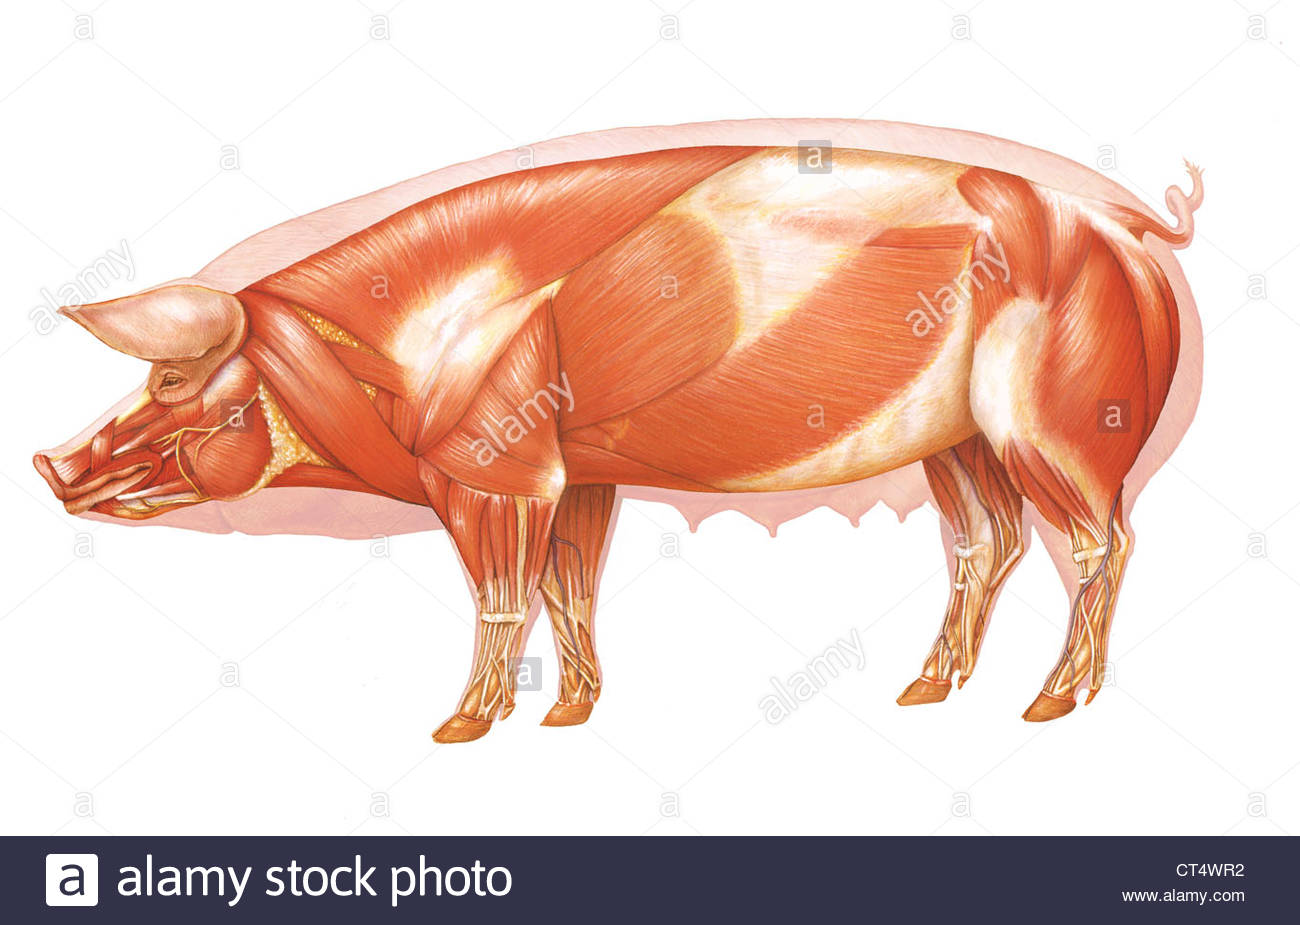 external fetal pig muscle diagram xtrons wiring anatomy drawing stock photo 49280534 alamy